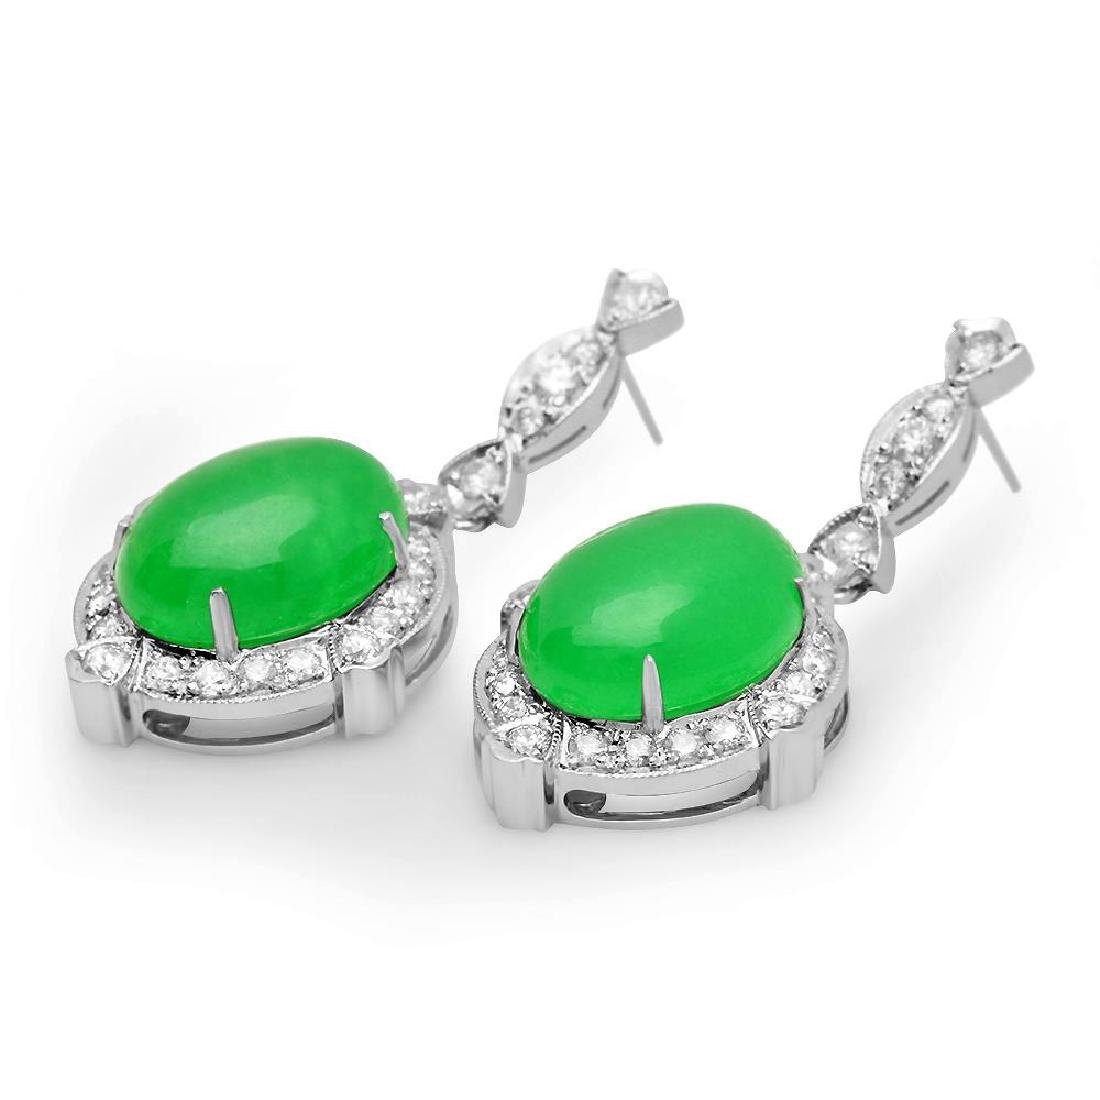 14K Gold 17.86ct Jadeite 1.92cts Diamond Earrings